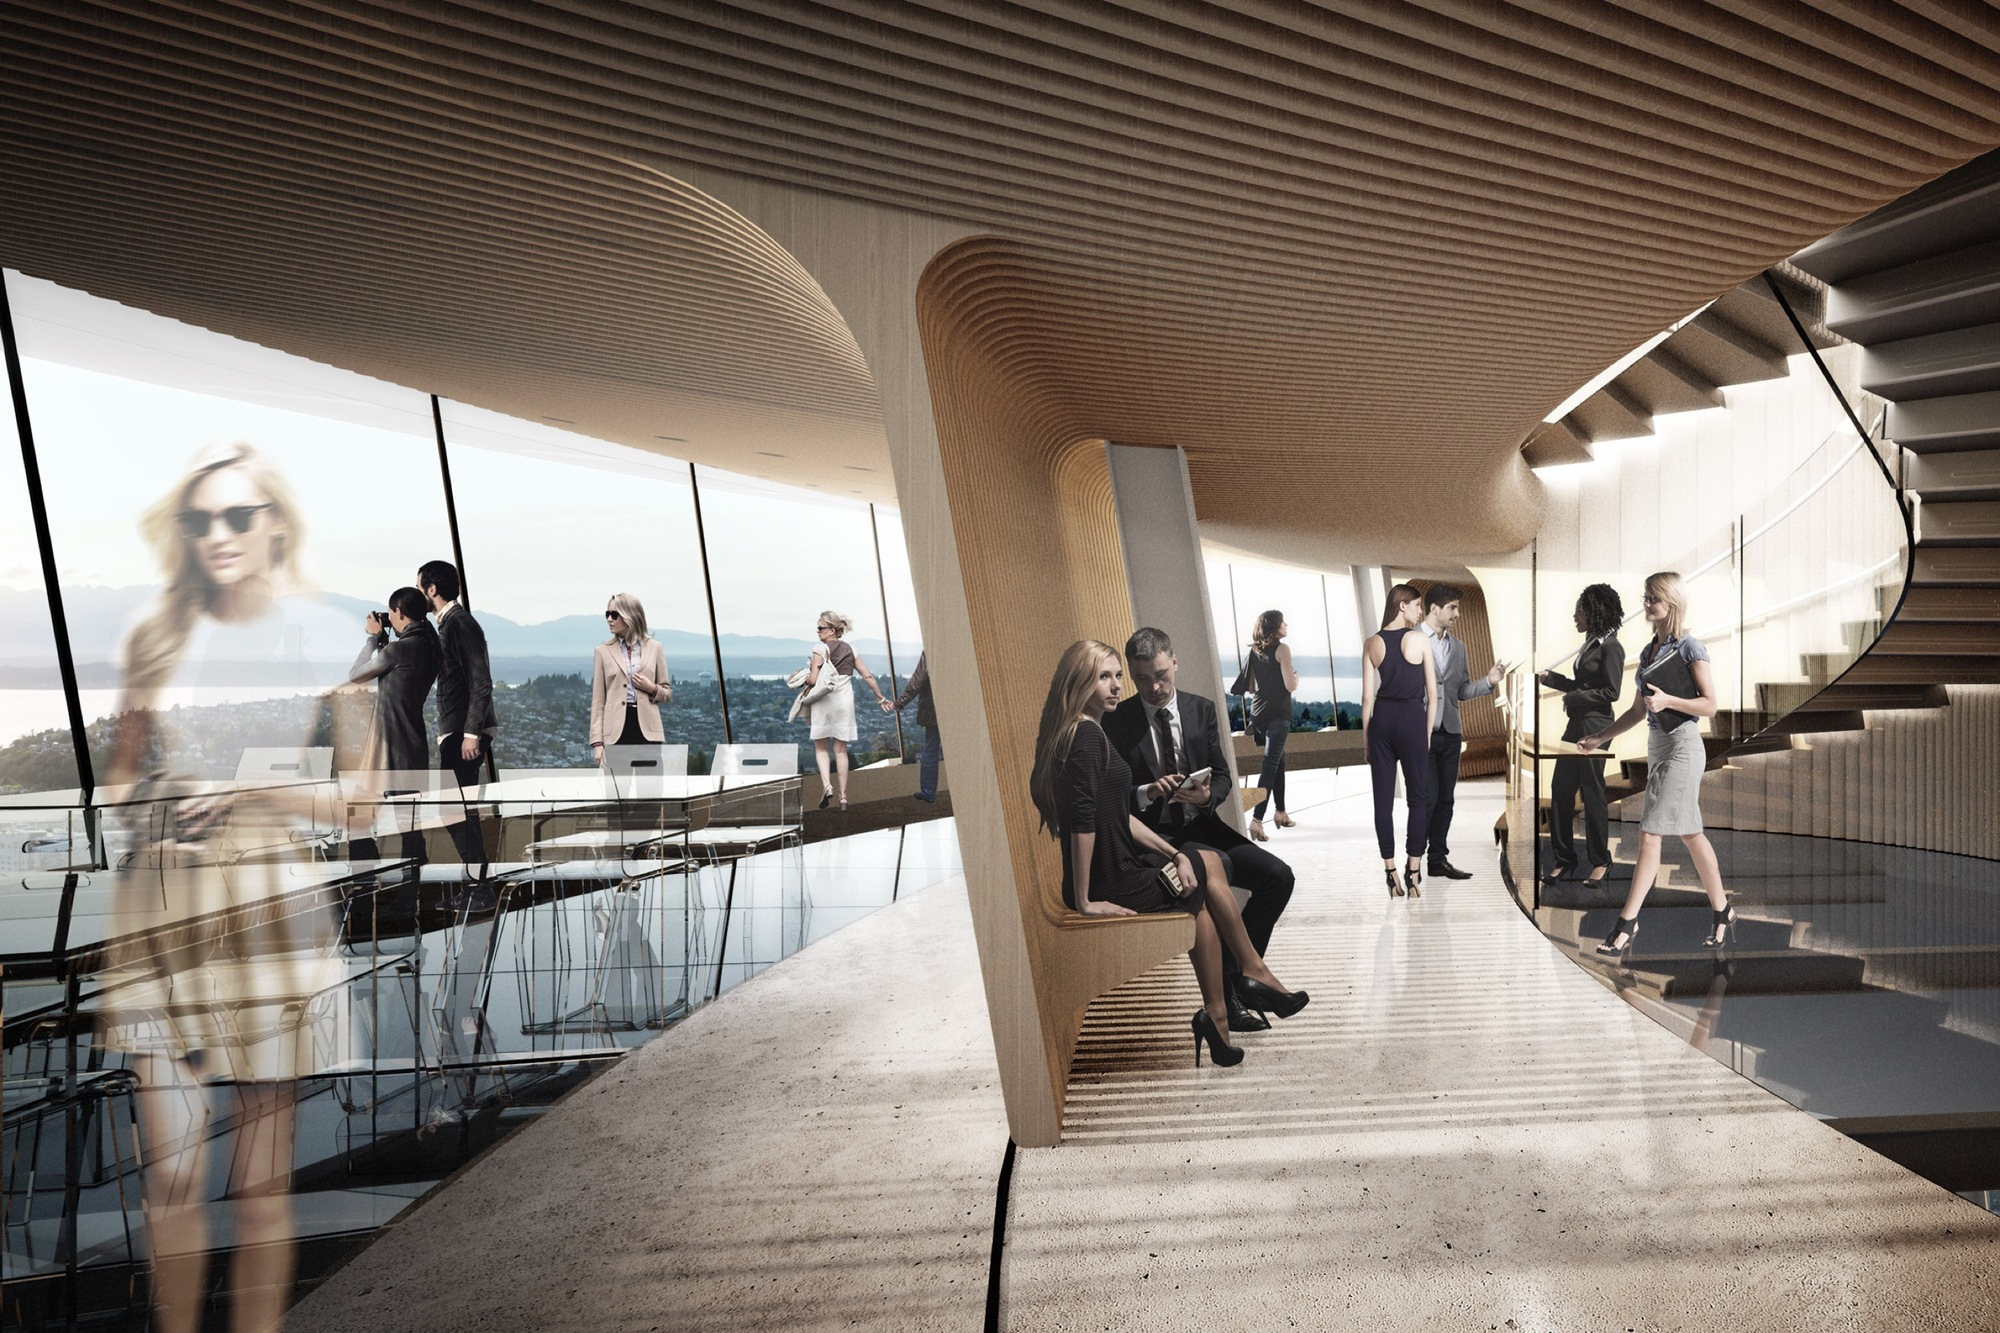 Restaurant Design Concepts Gallery Of Seattle's Space Needle To Undergo $100 Million